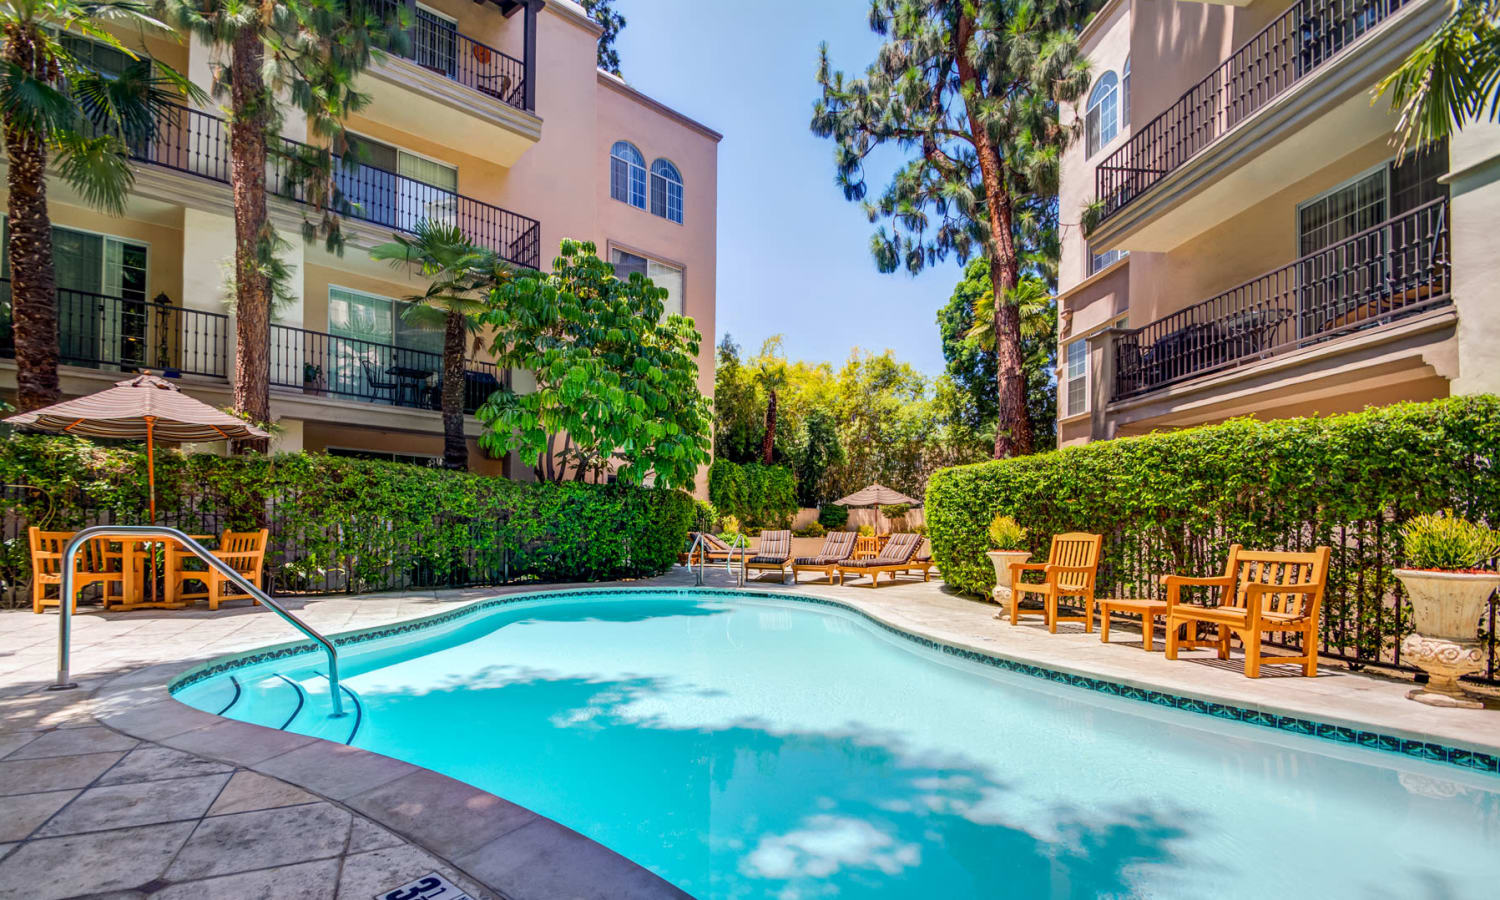 Resort-style swimming pool on a beautiful day at L'Estancia in Studio City, California